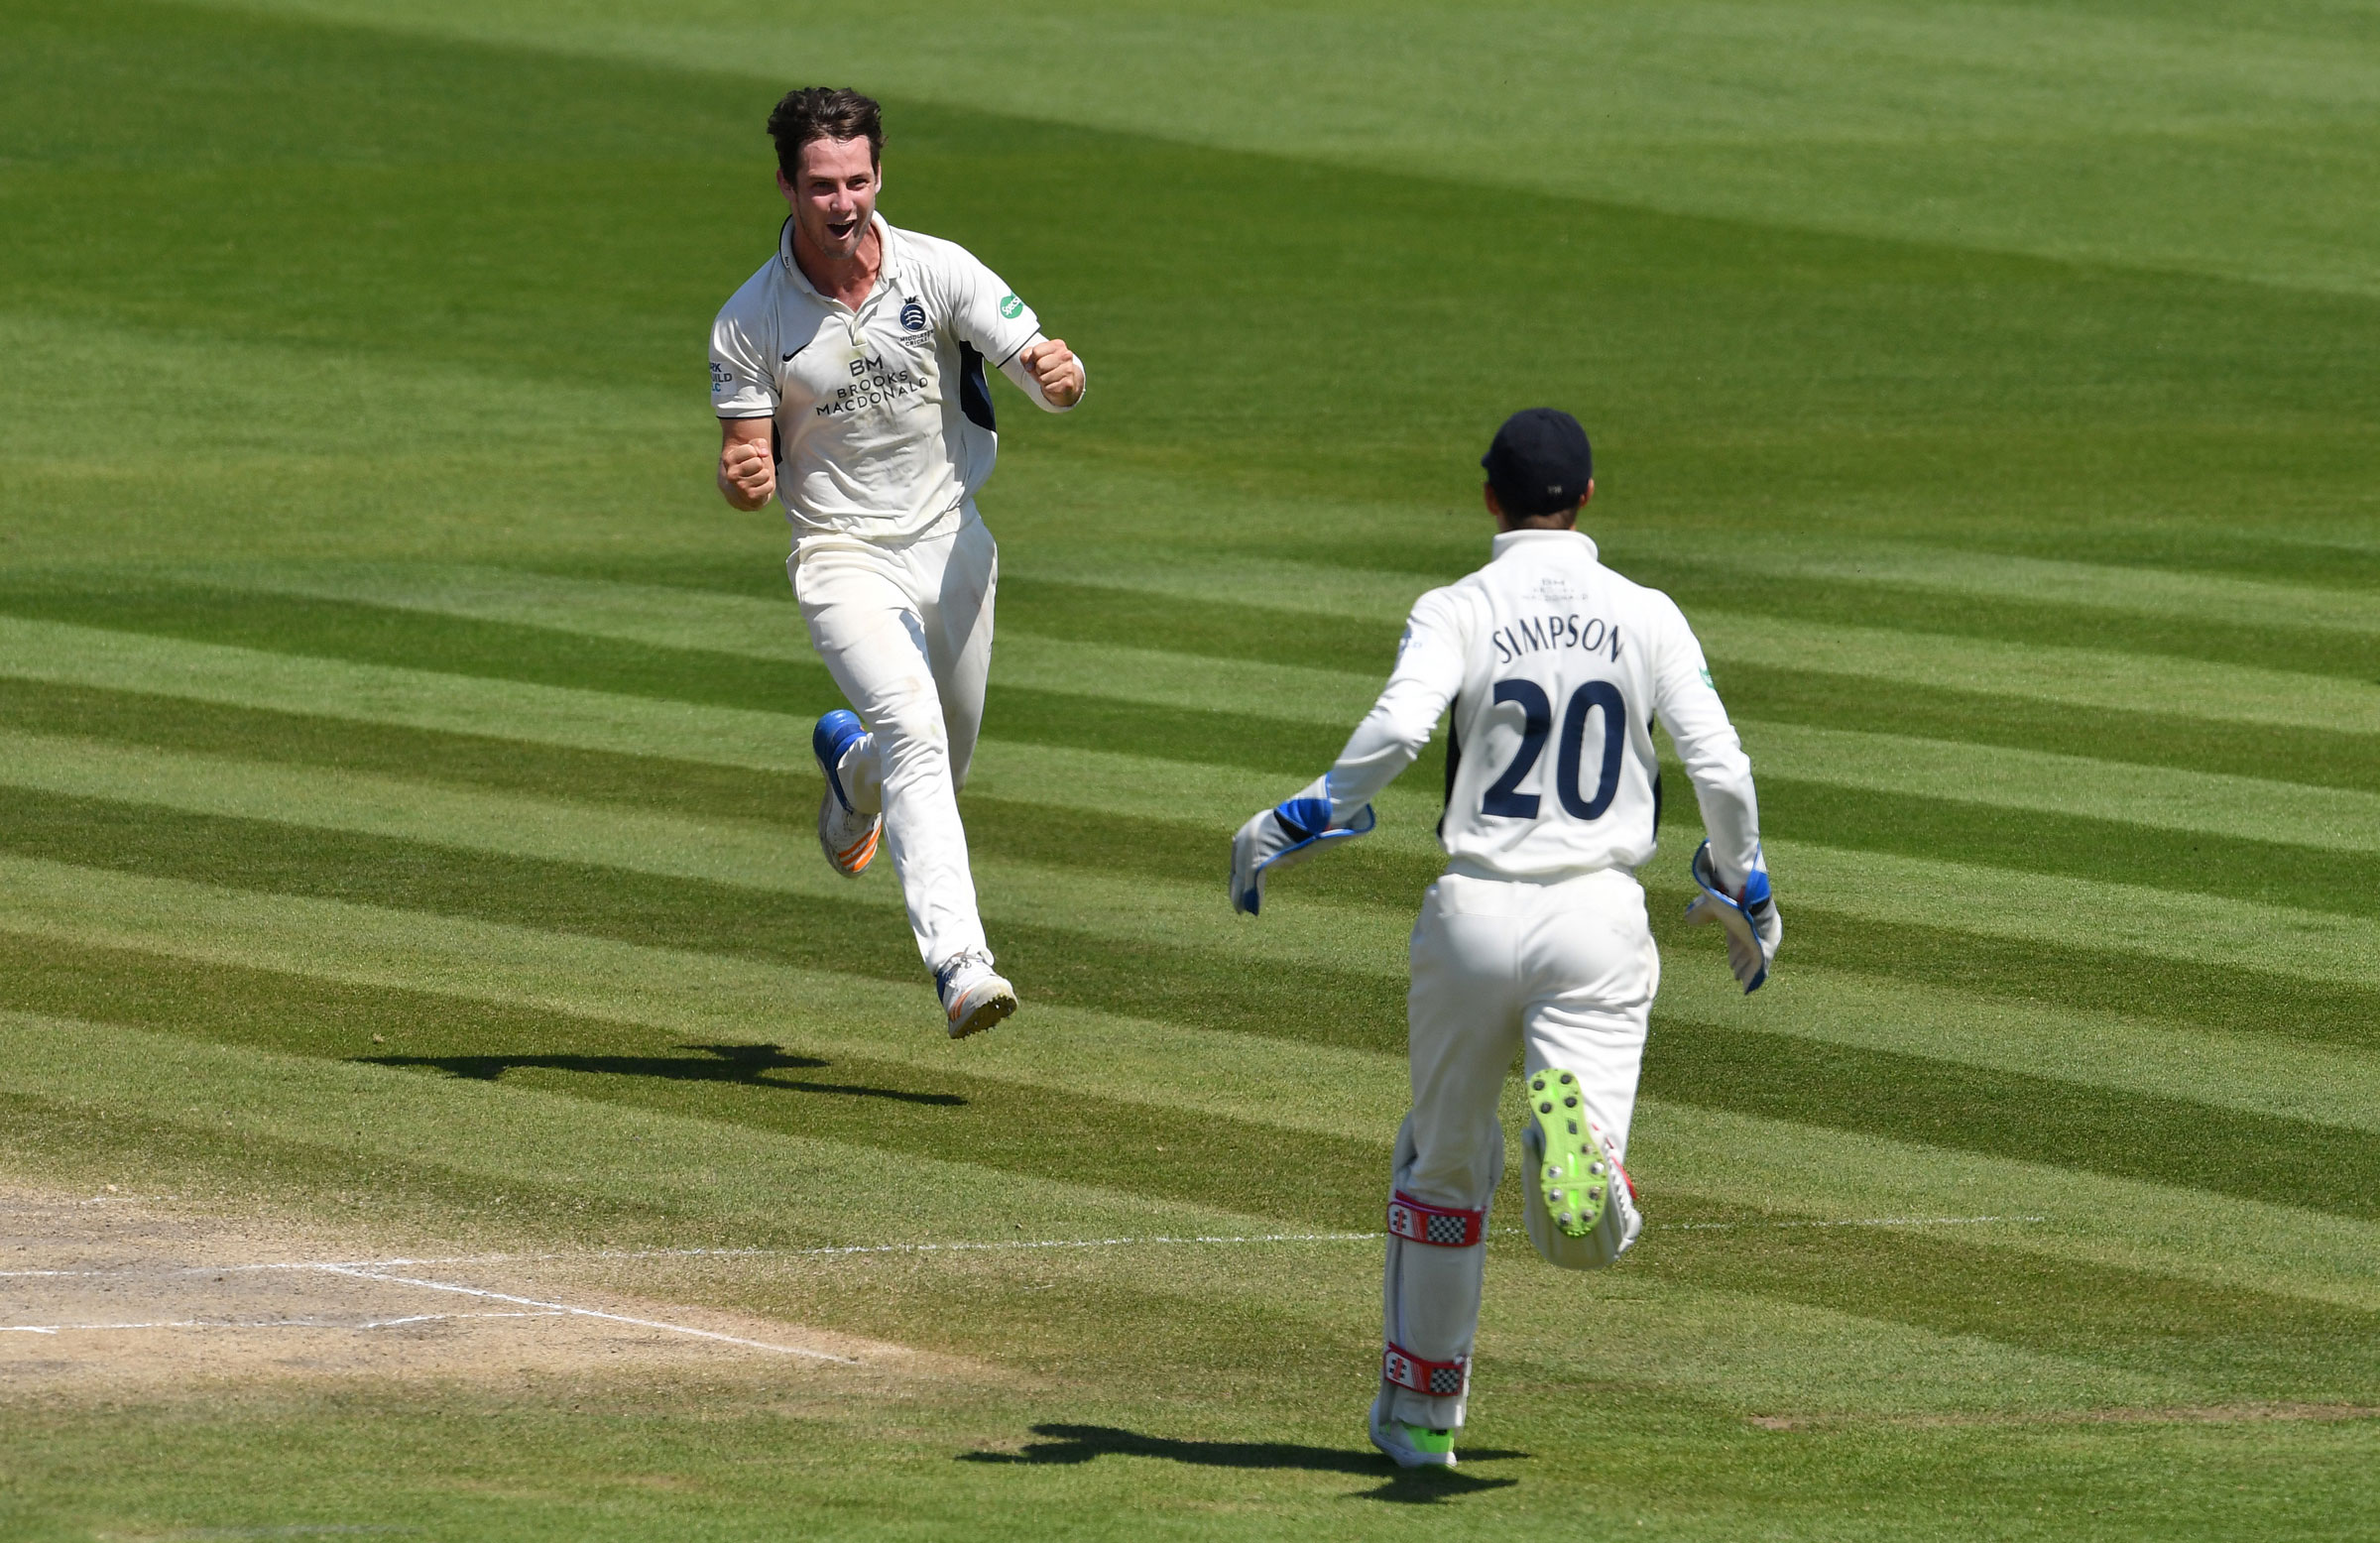 Cartwright celebrates a wicket for Middlesex // Getty